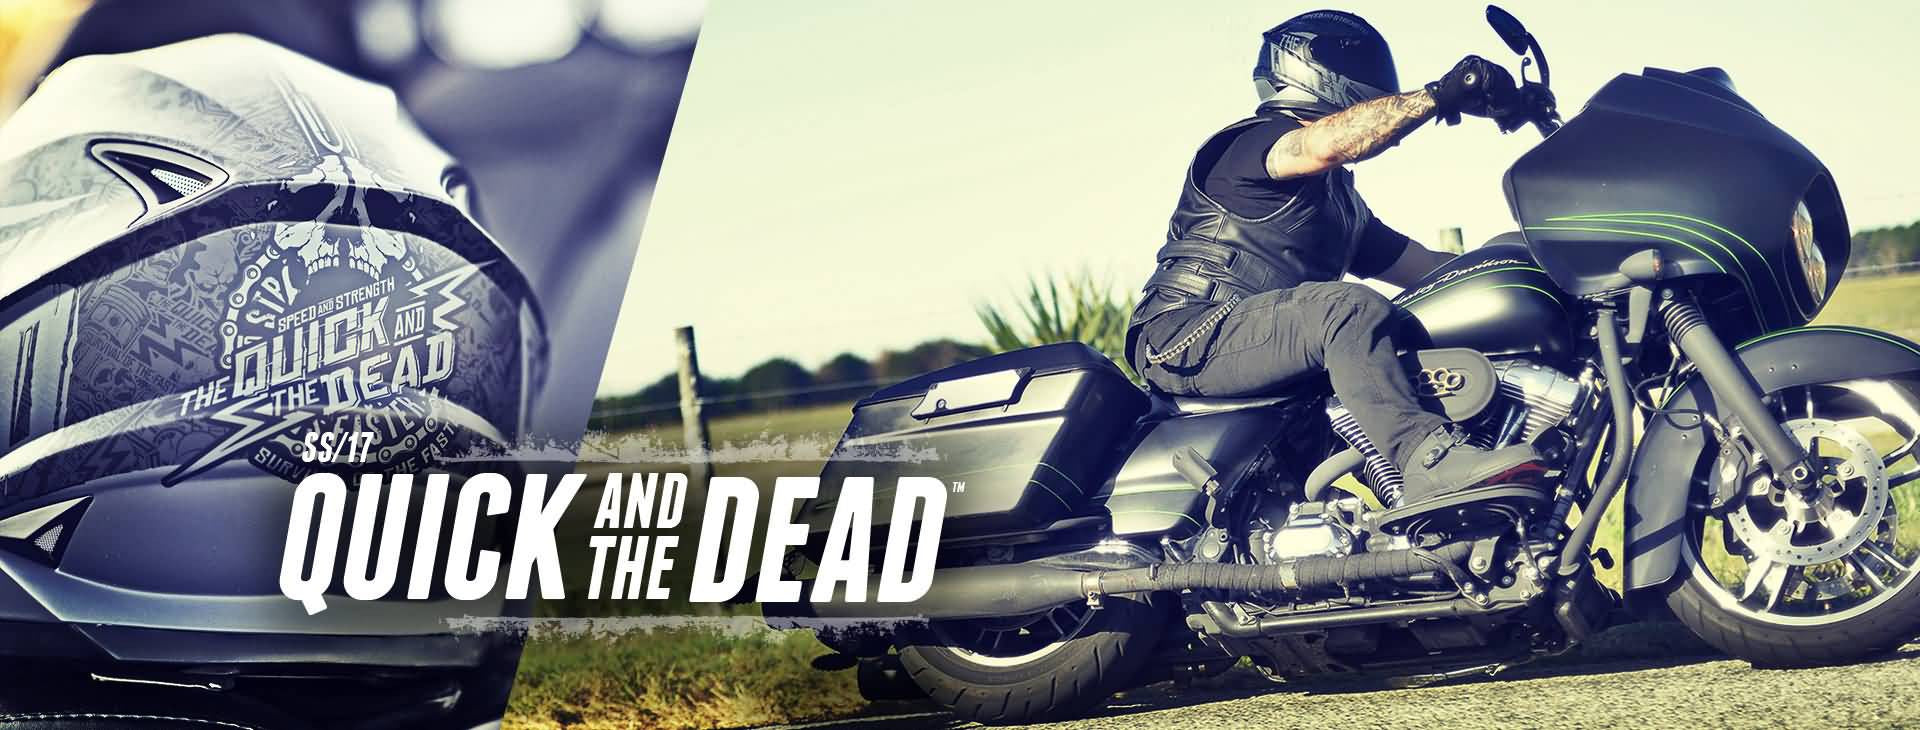 Speed & Strength The Newest Quick and the Dead Street Gear